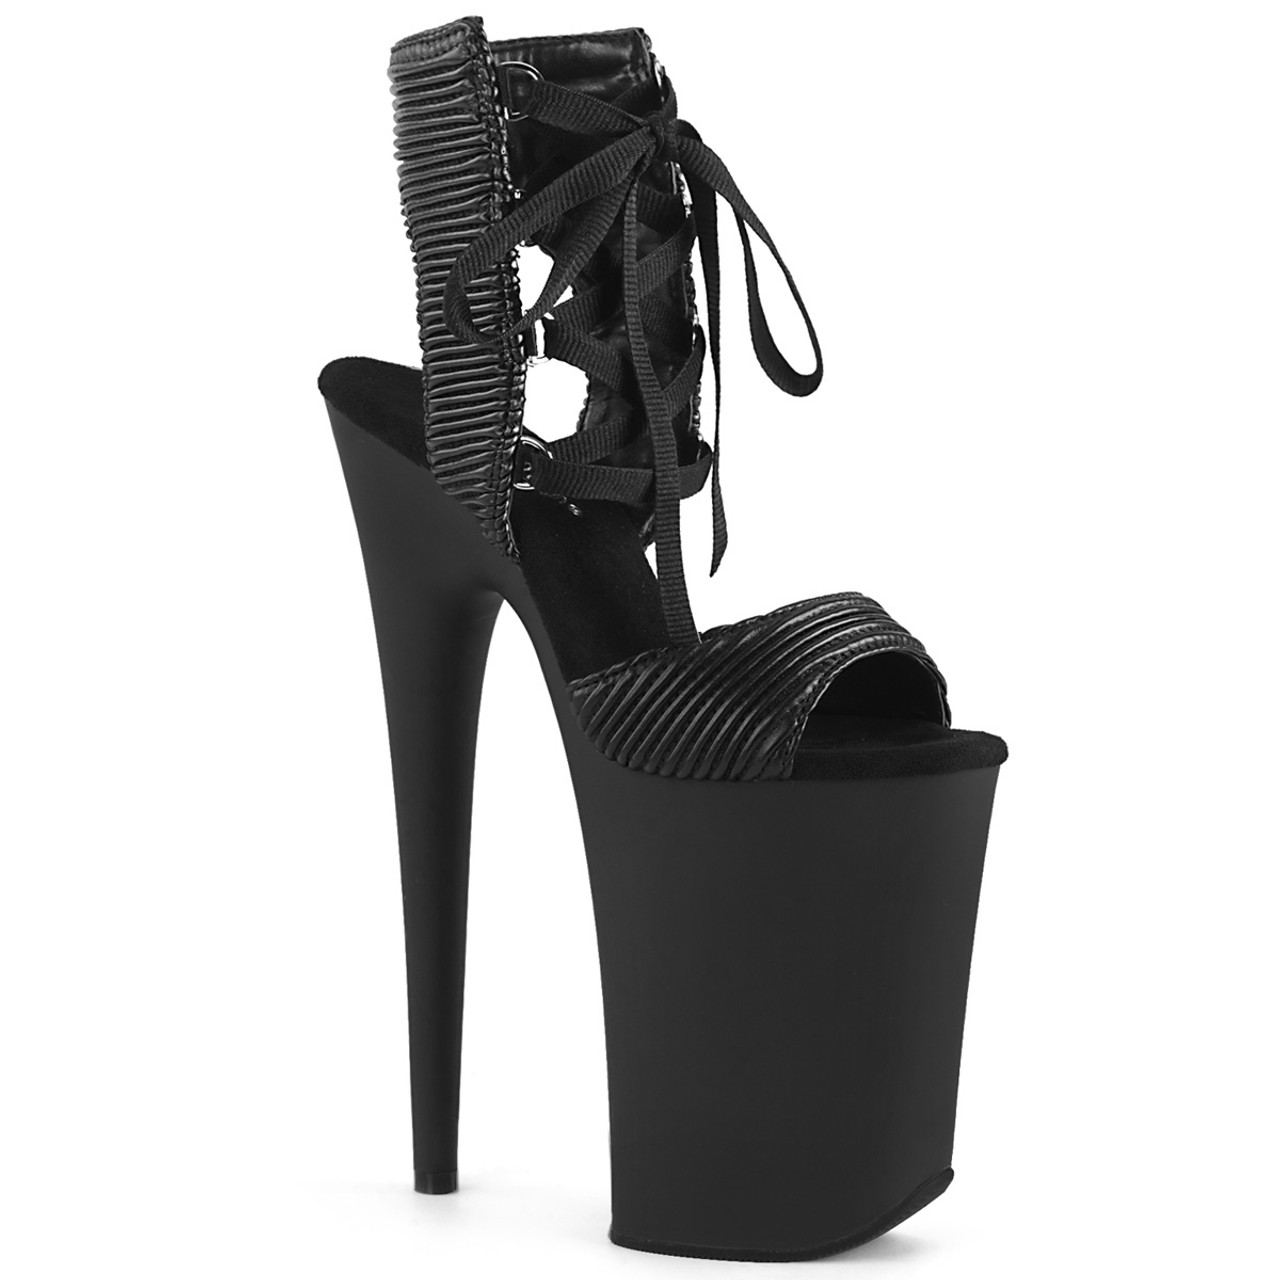 9 Inch Xtreme High Heel Lace up Sandal